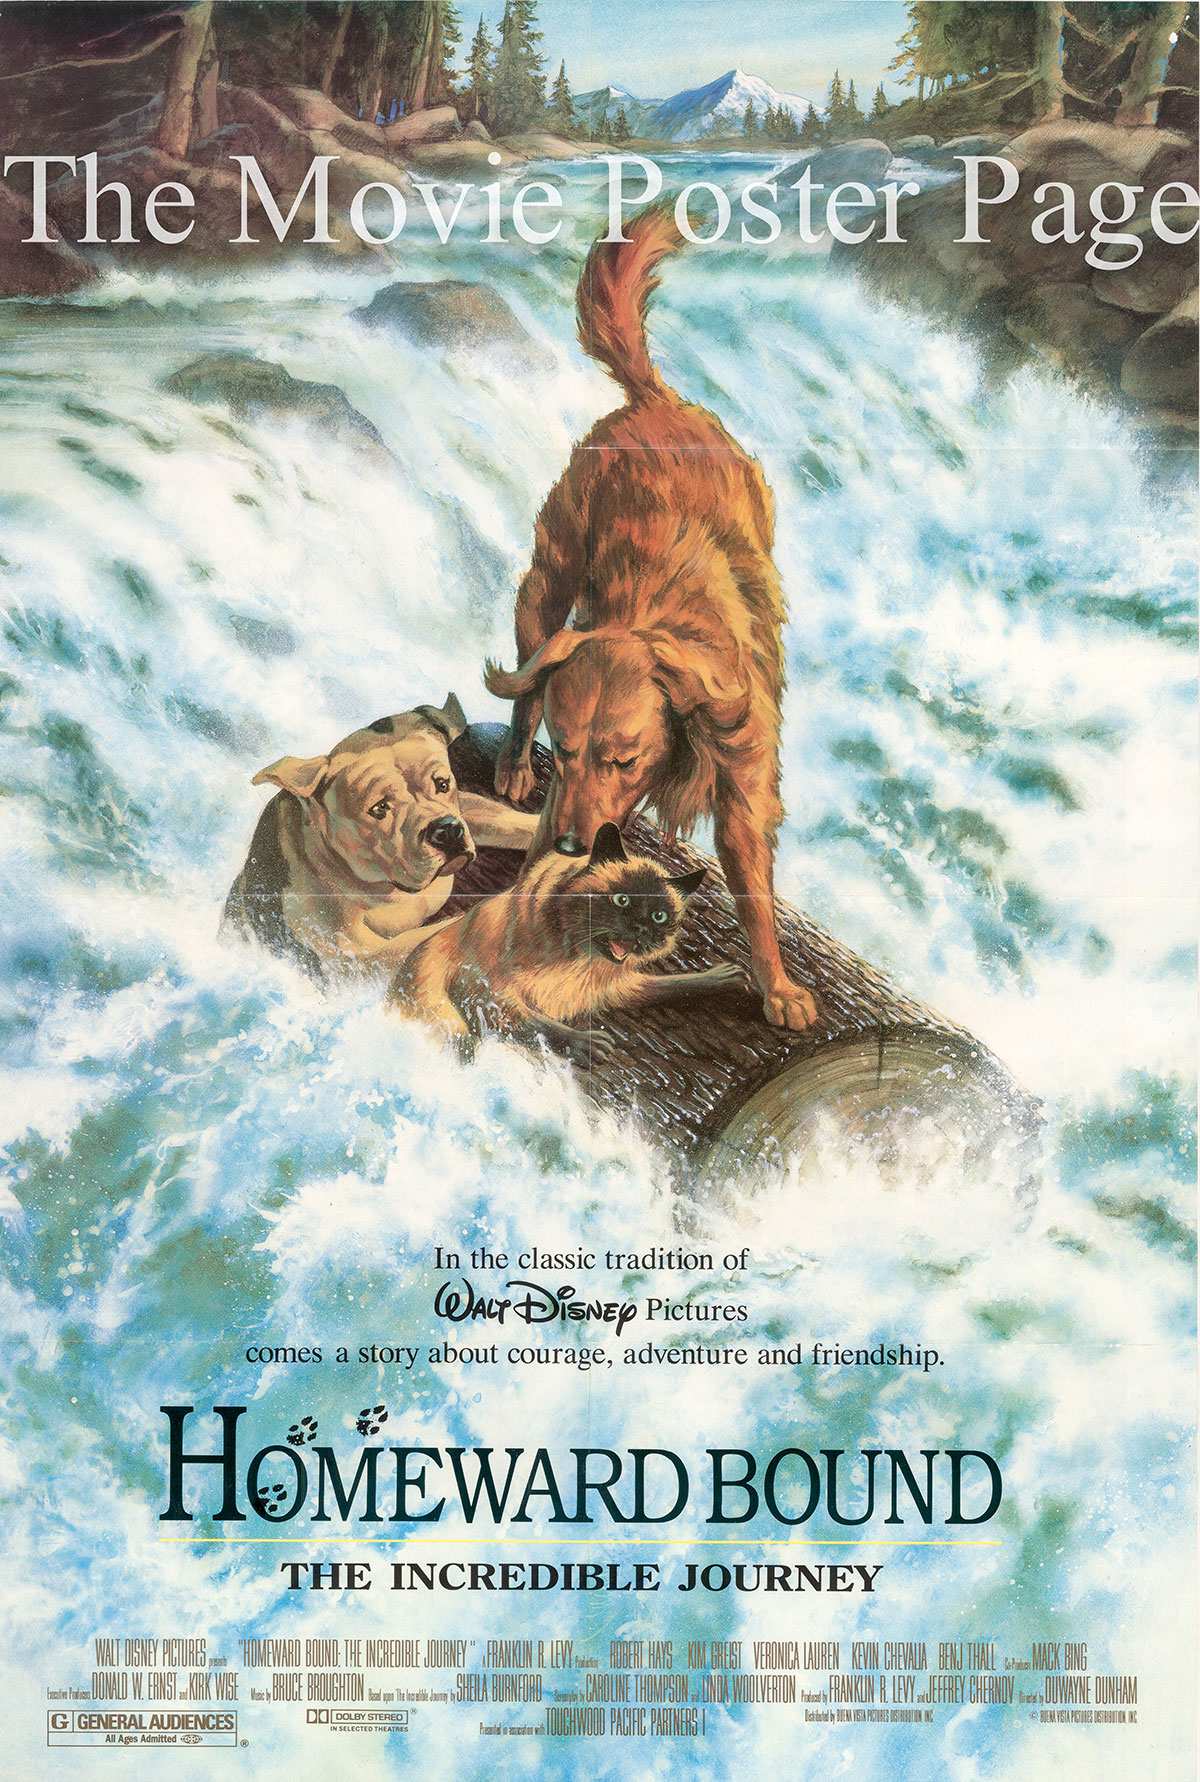 Pictured is the US promotional one-sheet for the 1994 Duwayne Dunham film Homeward Bound, starring Robert Hays.